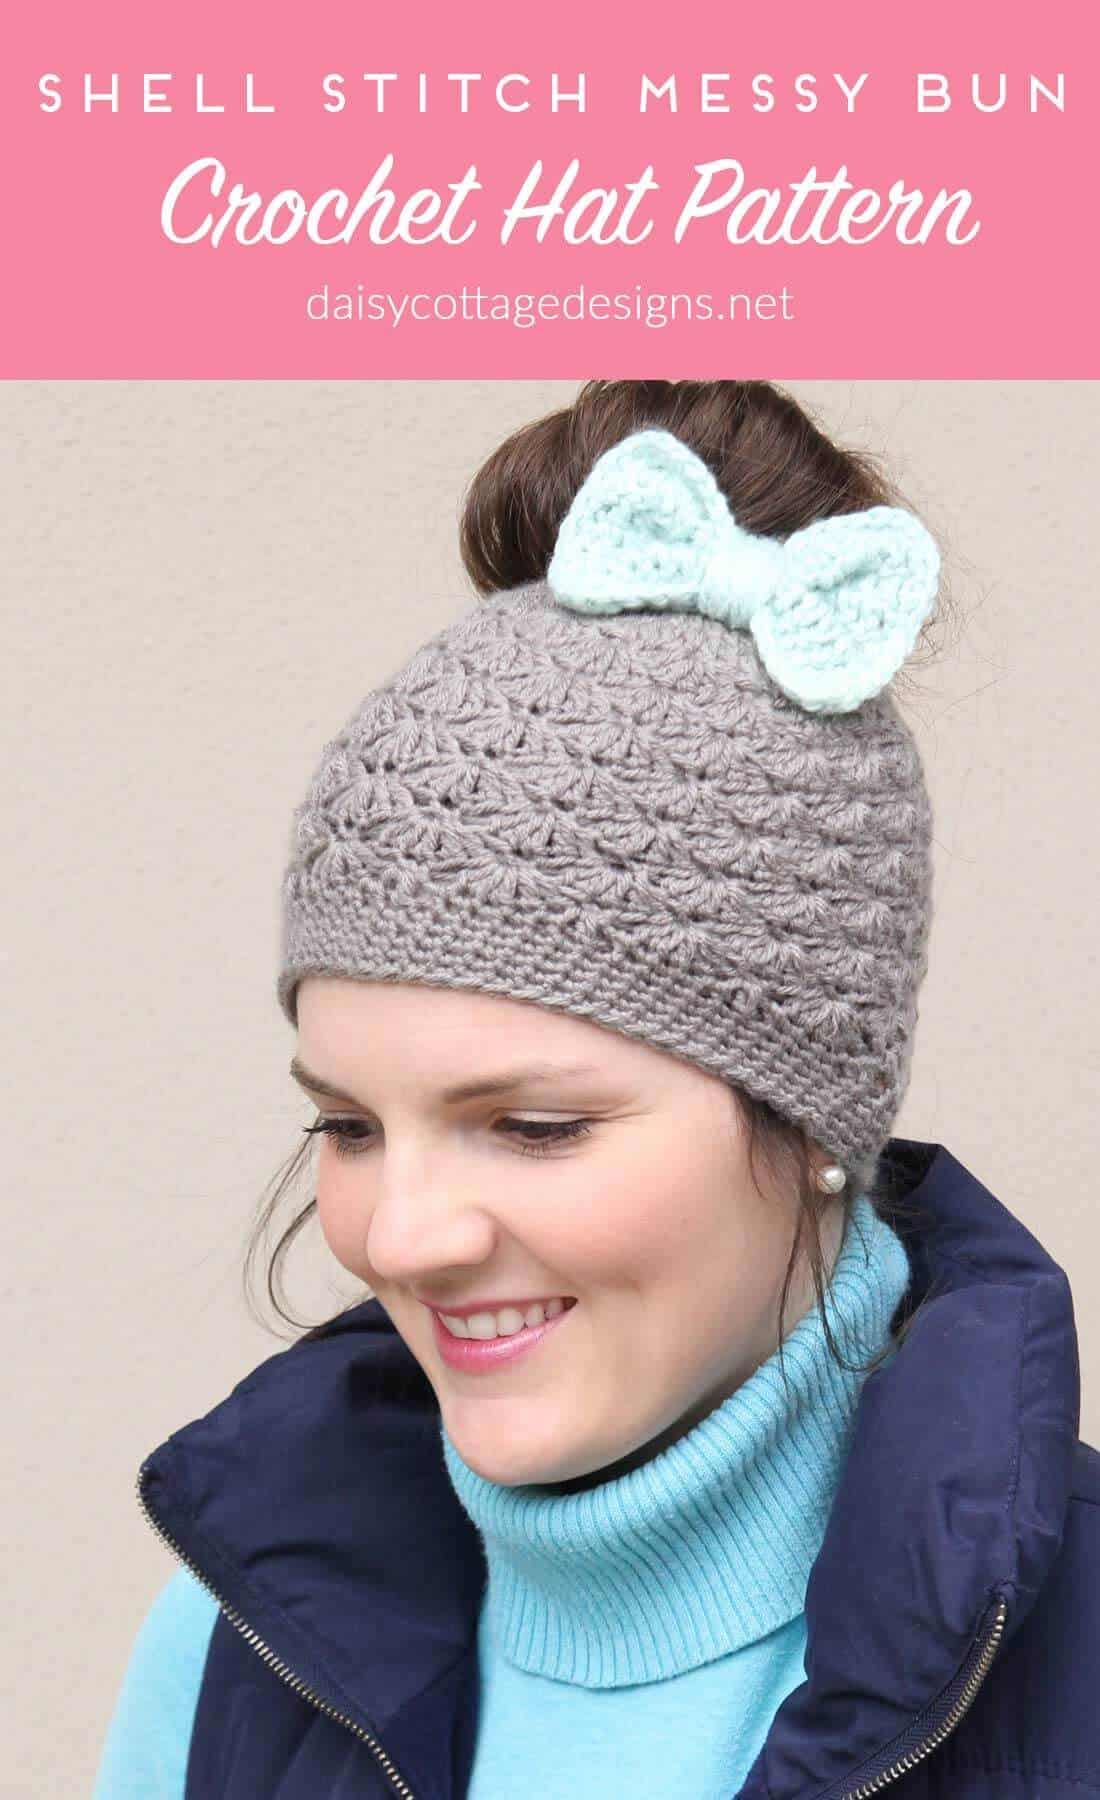 Shell Stitch Messy Bun Crochet Hat Pattern Daisy Cottage Designs